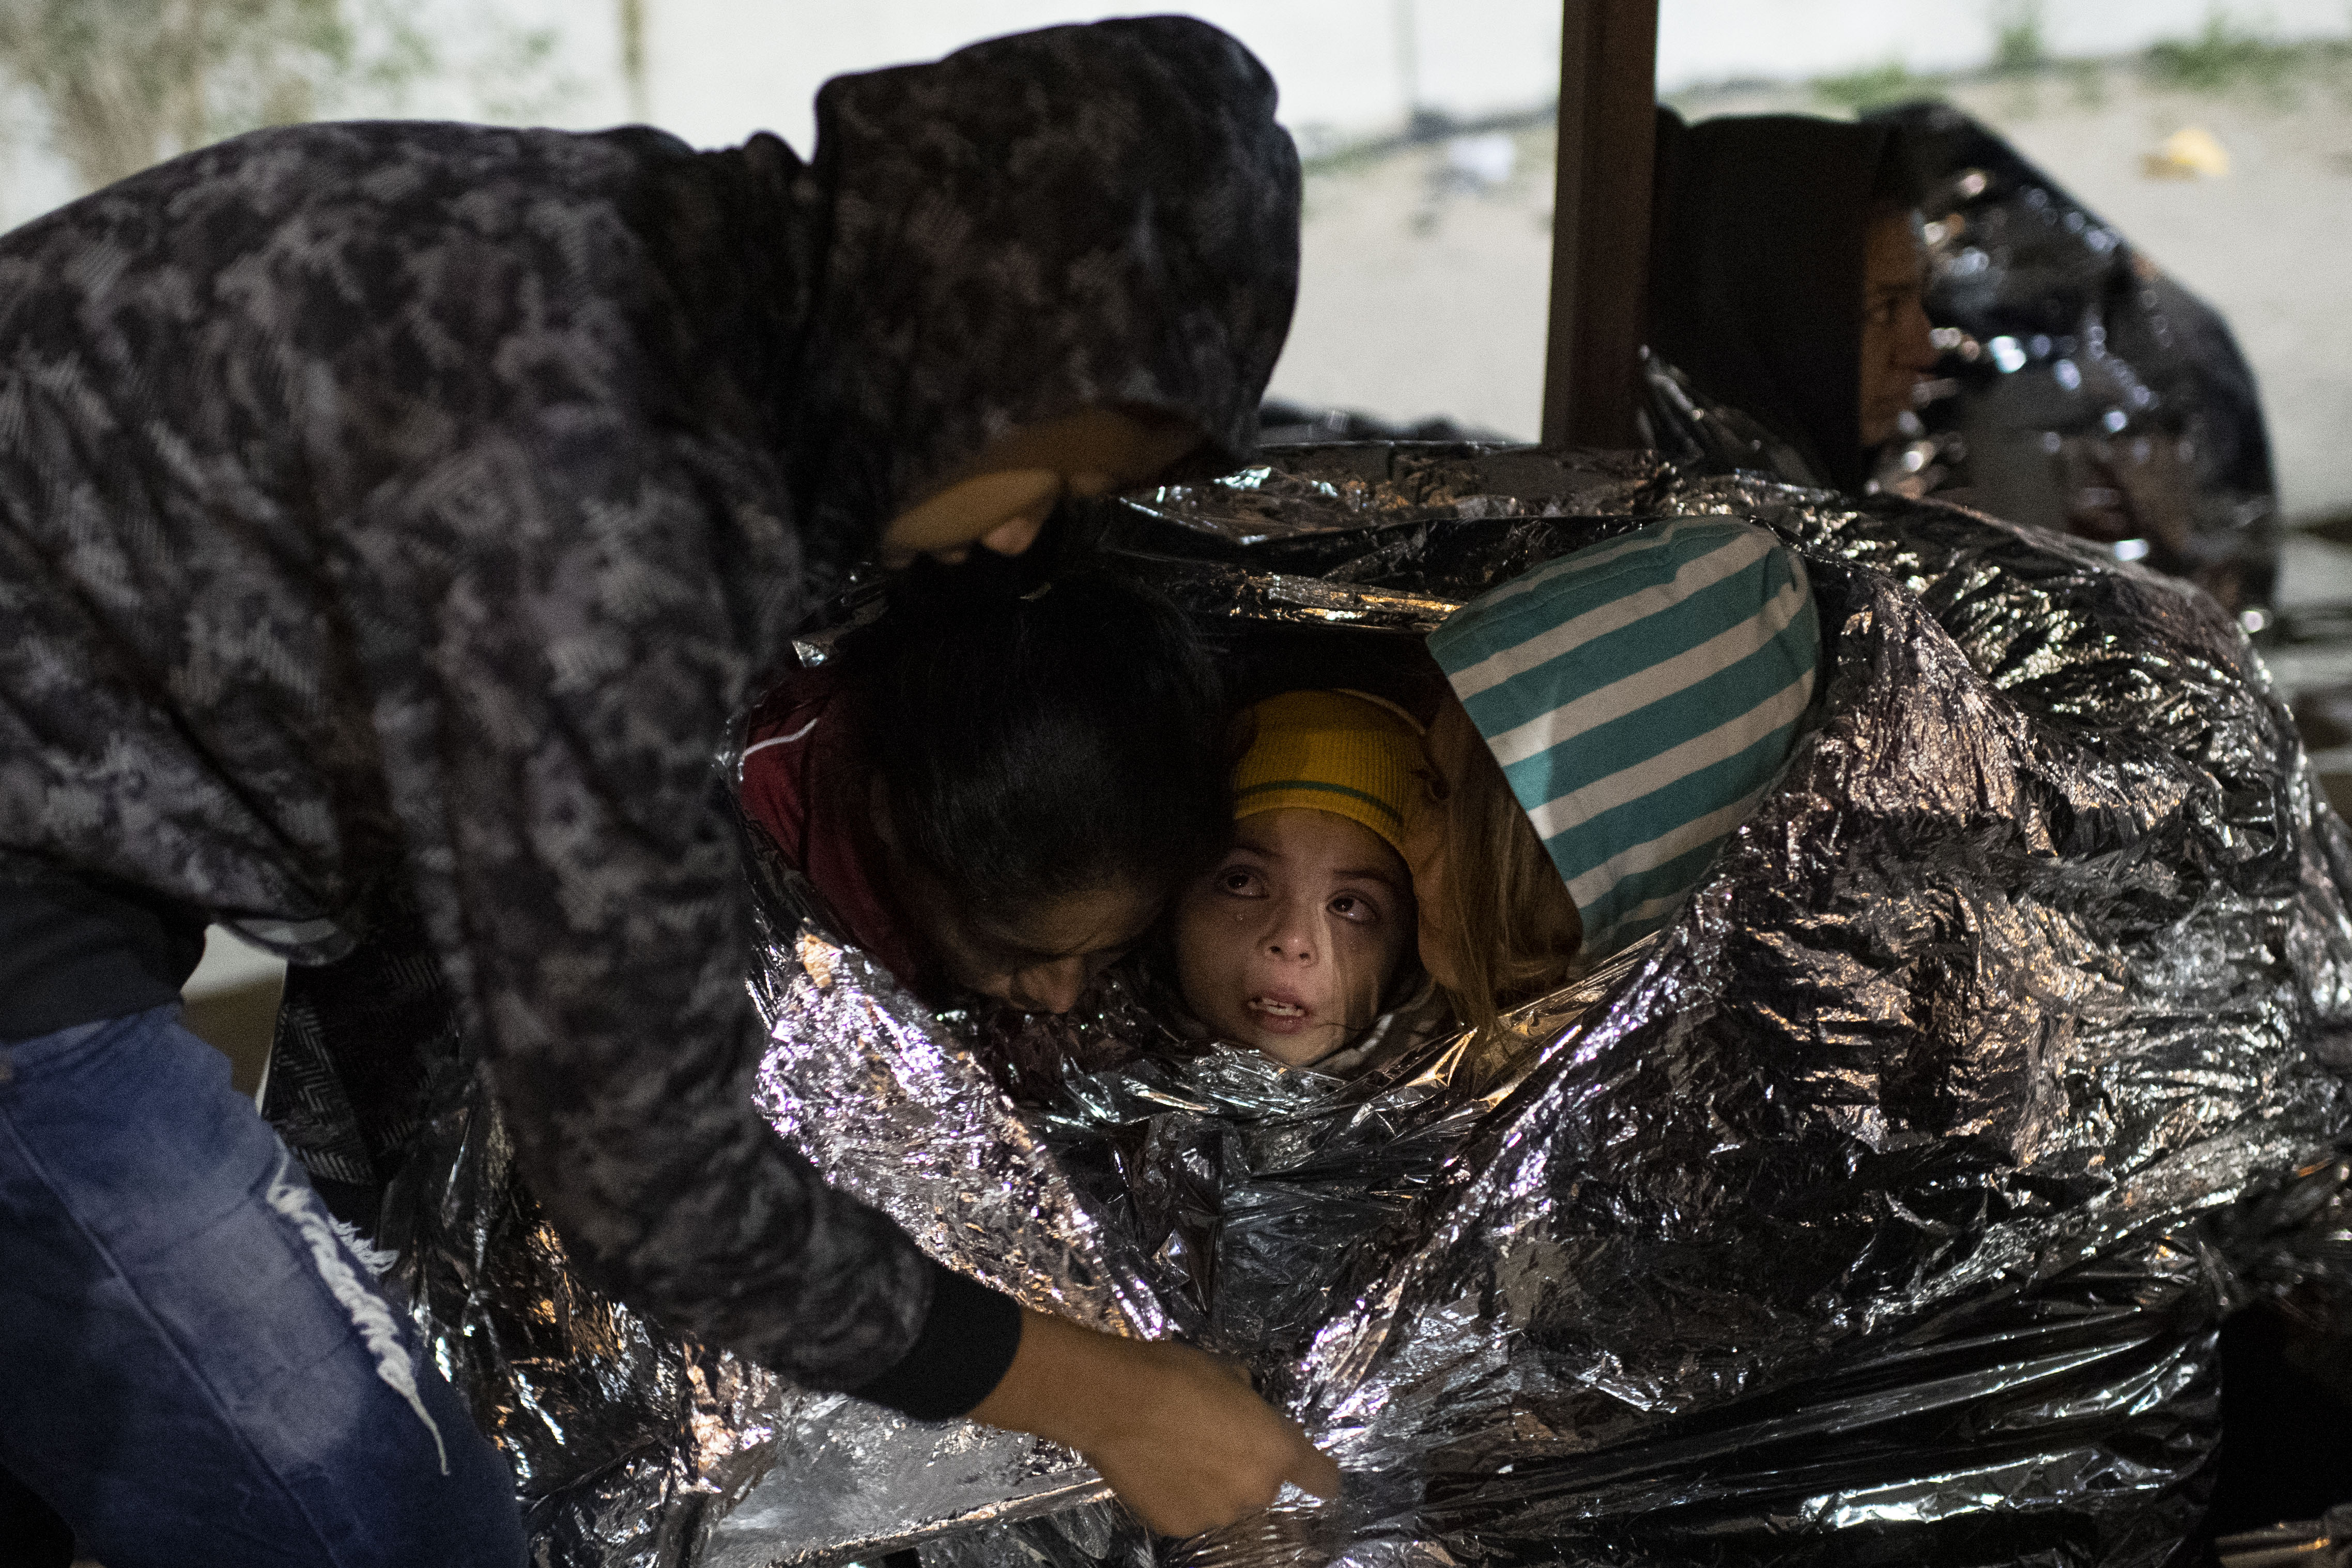 After walking across the Rio Grande on Feb. 22, a group of 64 Central American migrants arrived near El Paso and waited to be processed amid near-freezing temperatures. In a shift to immigration patterns, more unauthorized migrant adults are traveling with children.